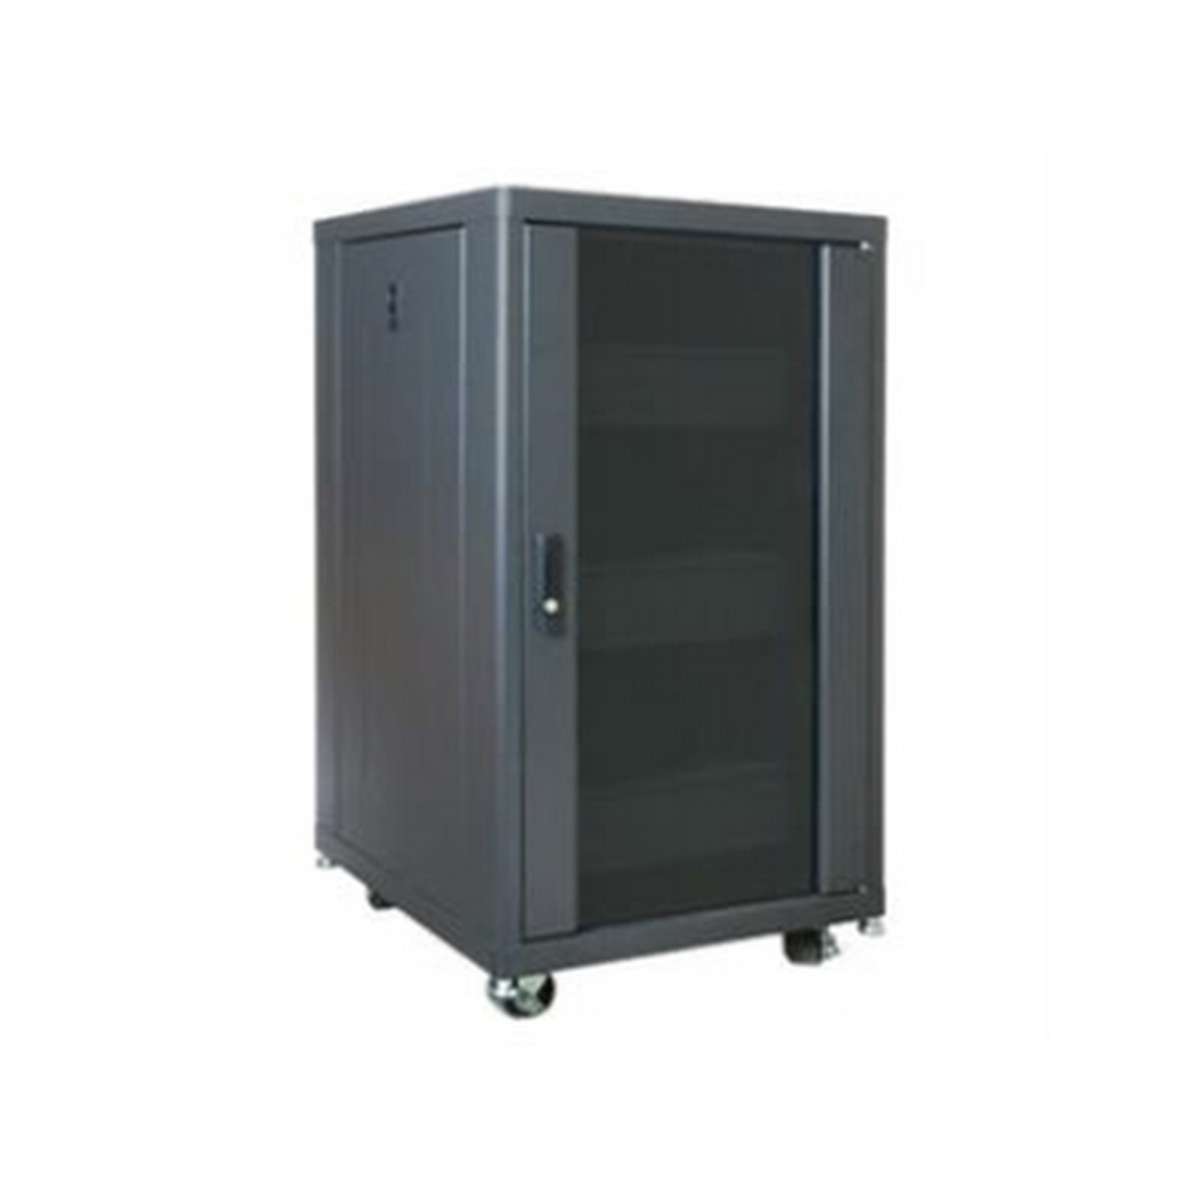 Lowell LCDR-4224 42 space all in one enclosed rack, 2 whisper fans,  9 (2U) steel shelves, 9 (2U) blank panels, Real glass door, open center, 2 holes with grommets